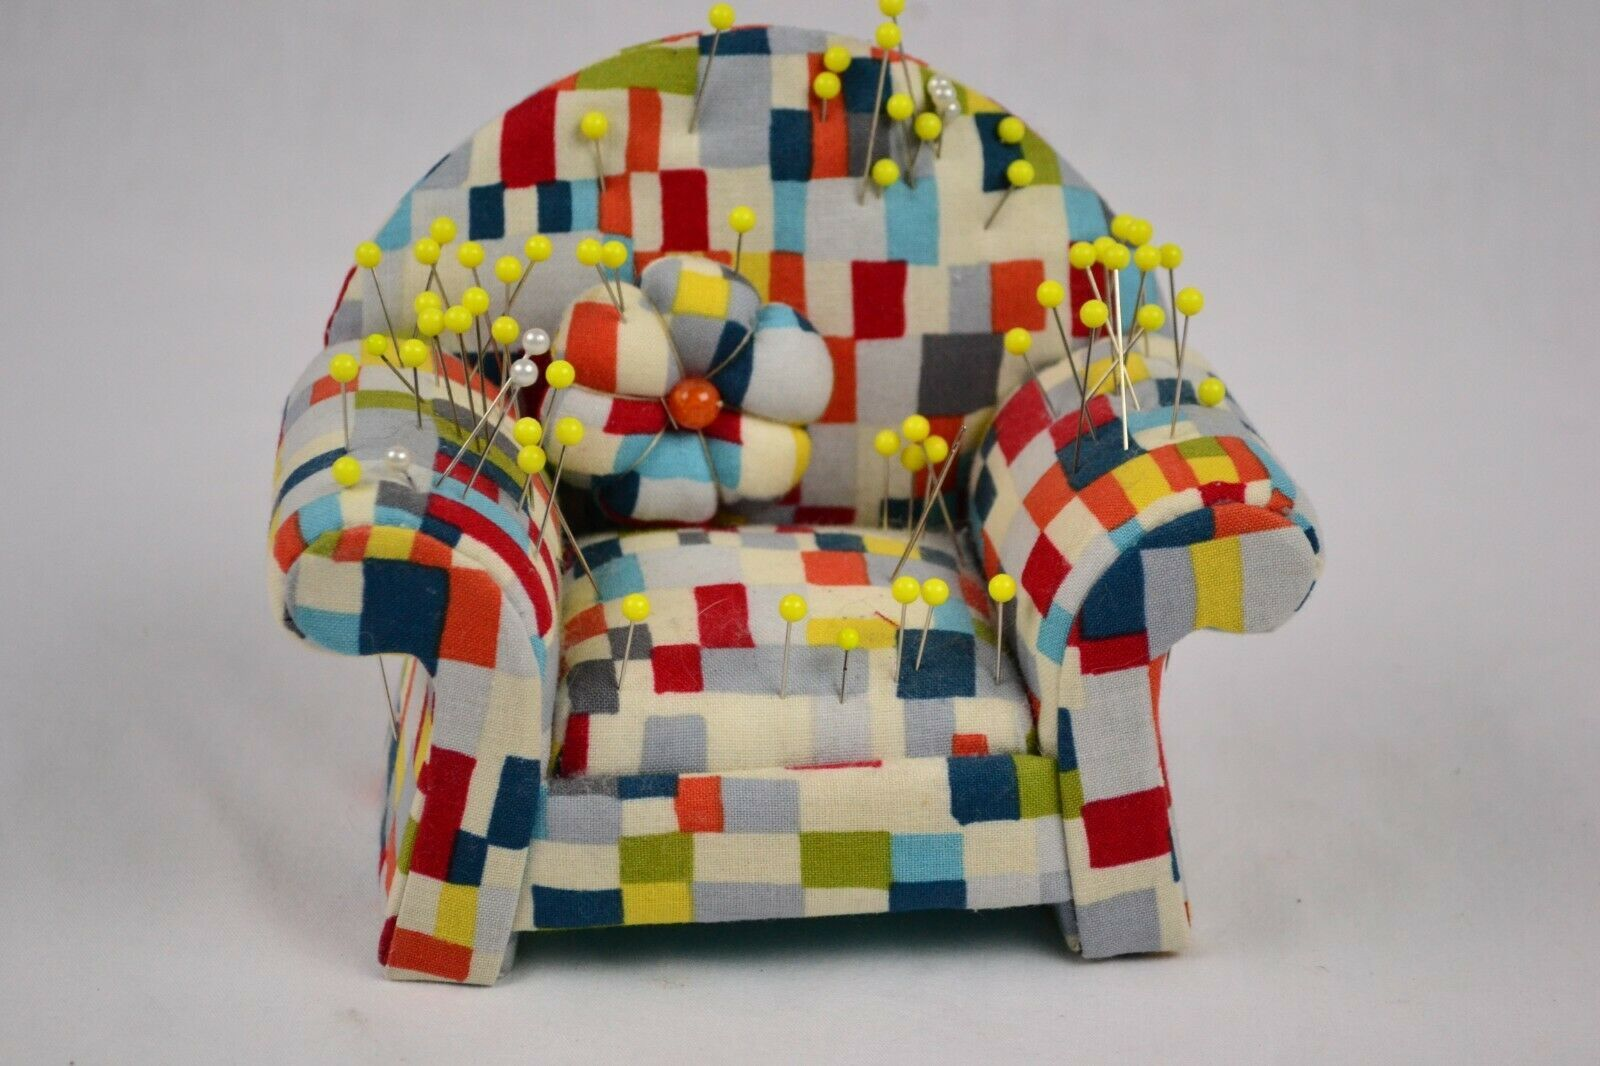 Couch Pin Cushion With Pins, Cute